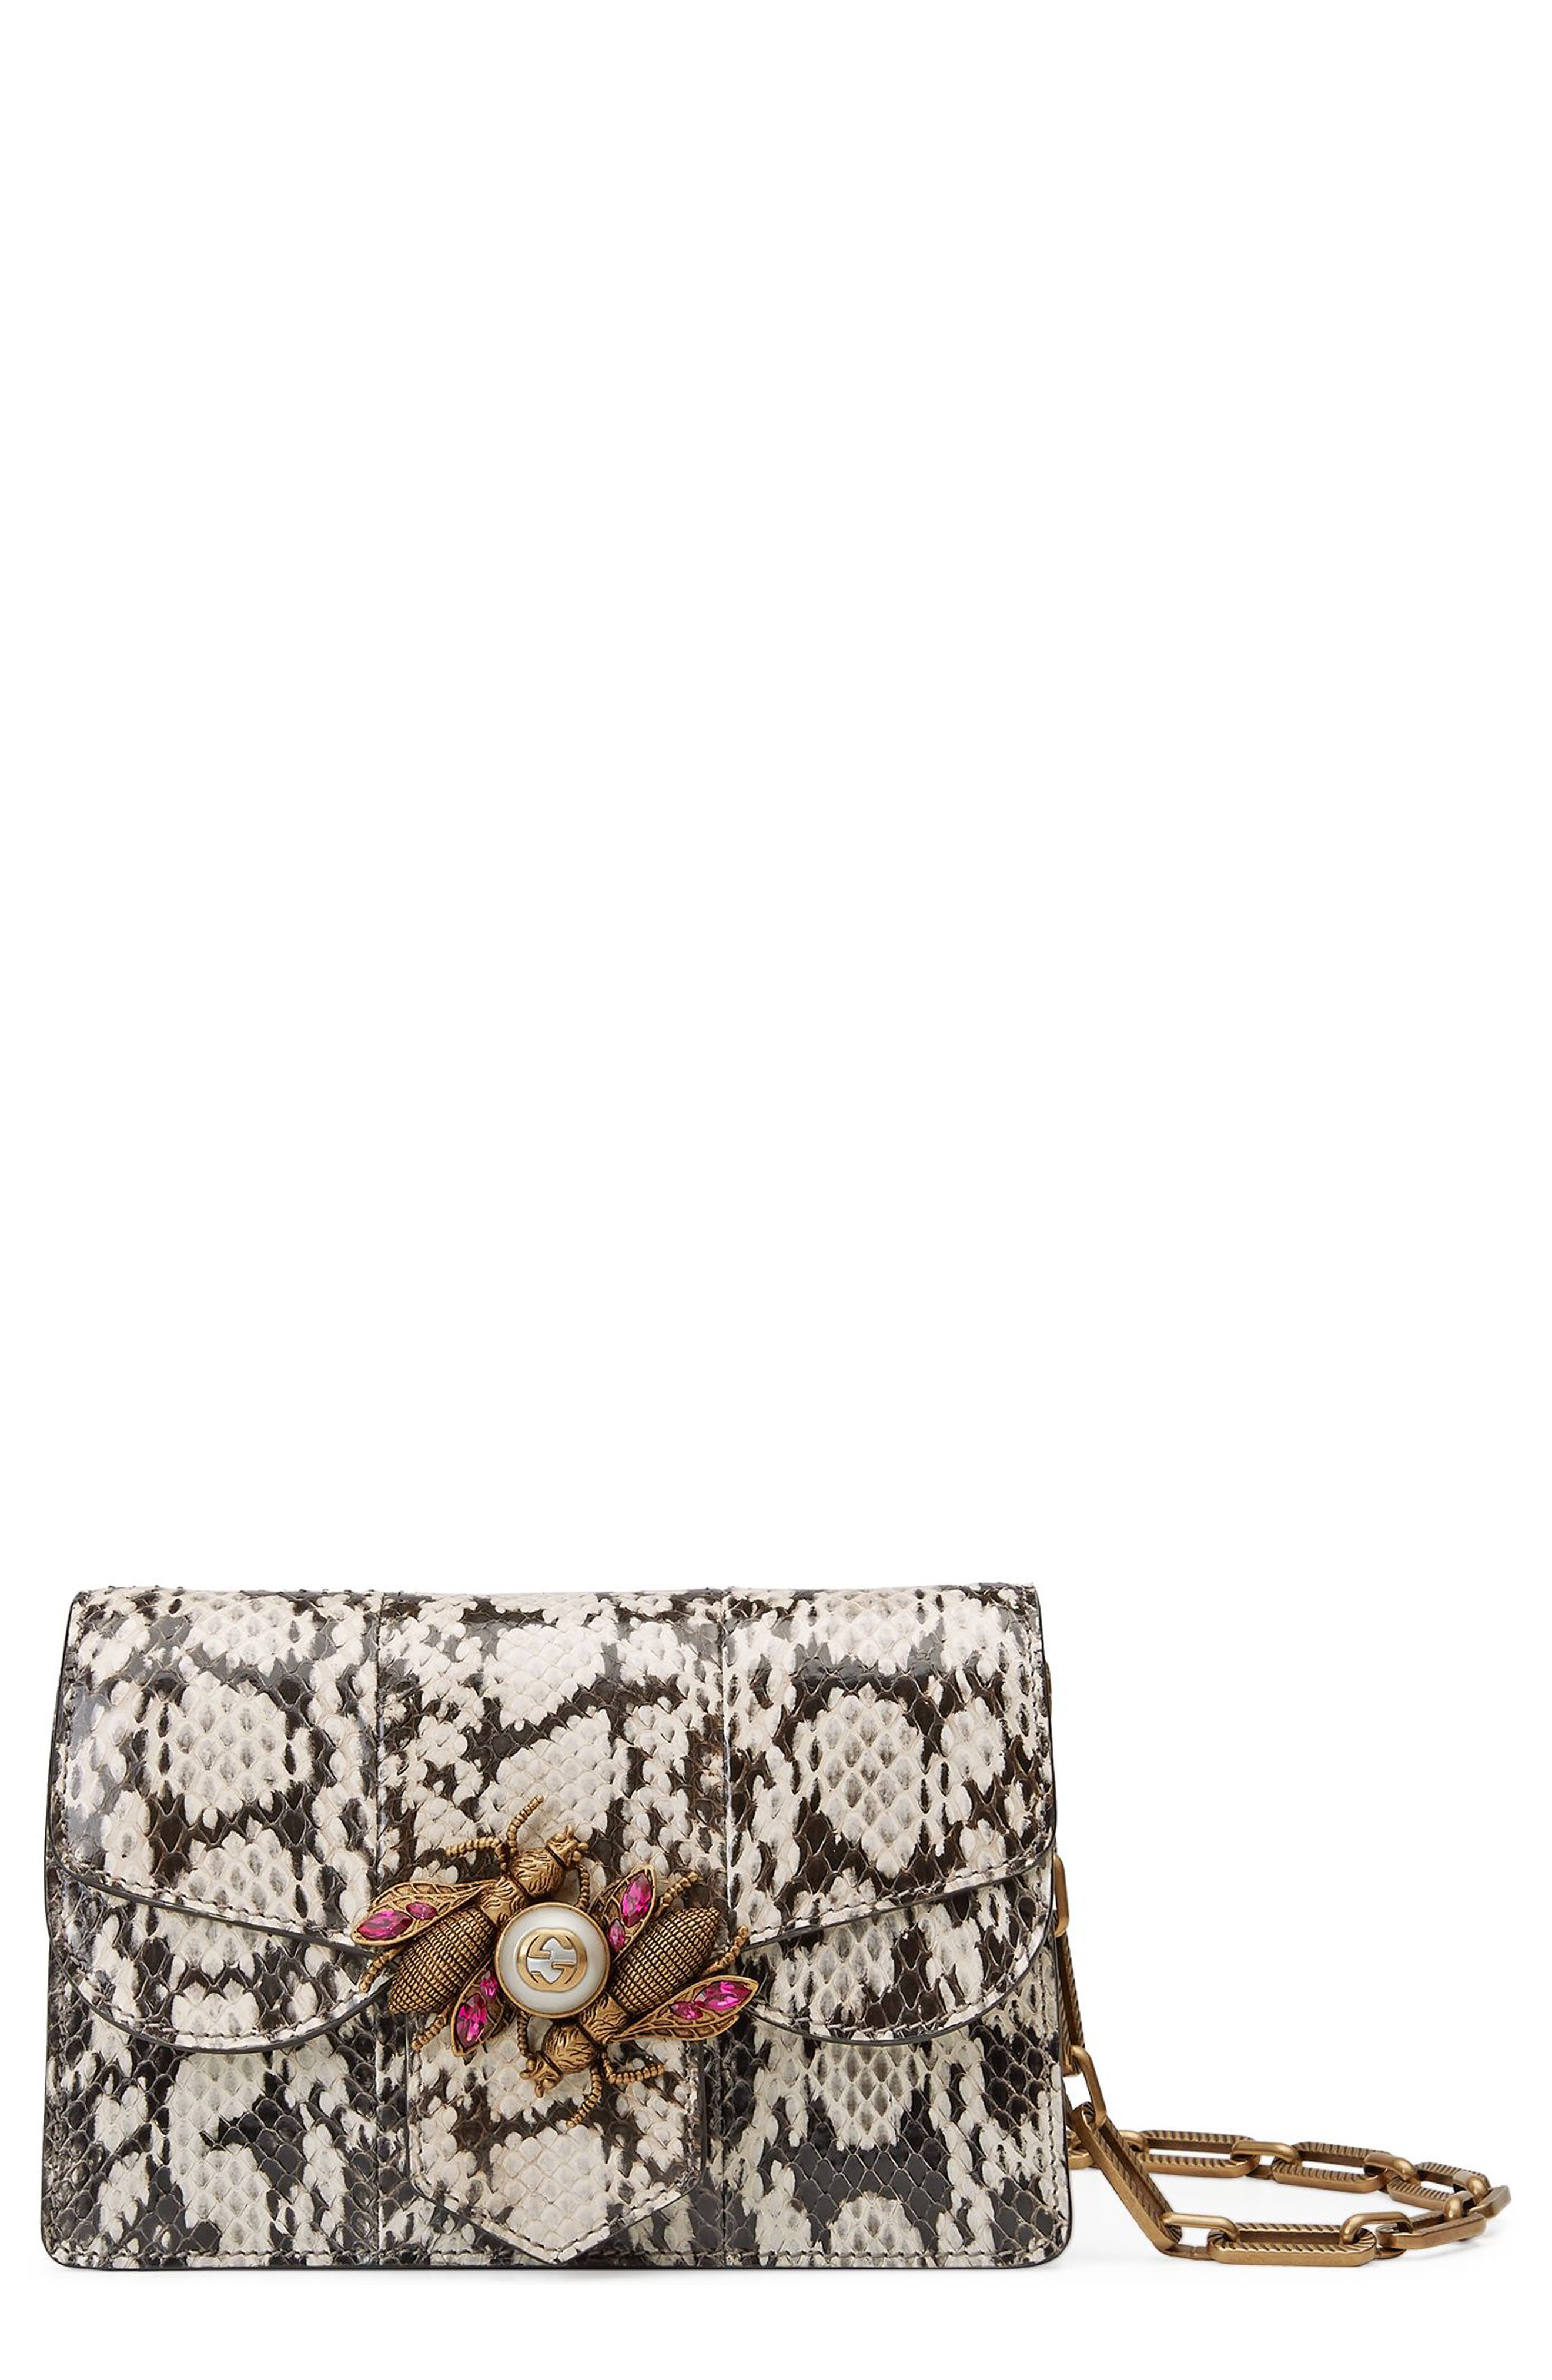 Alternate Image 1 Selected - Gucci Mini Broadway Bee Genuine Snakeskin Shoulder Bag